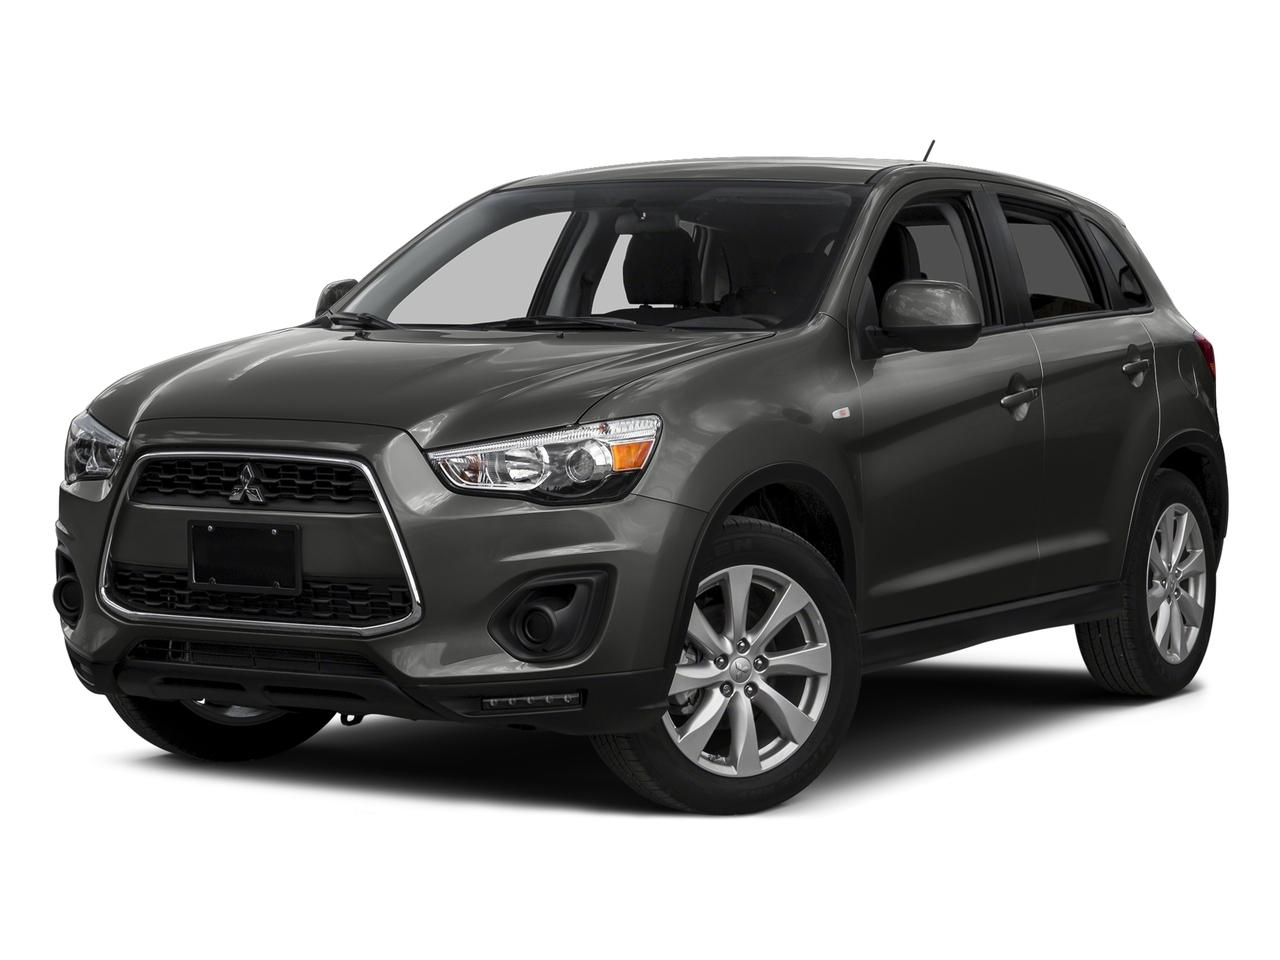 2015 Mitsubishi Outlander Sport Vehicle Photo in Zelienople, PA 16063